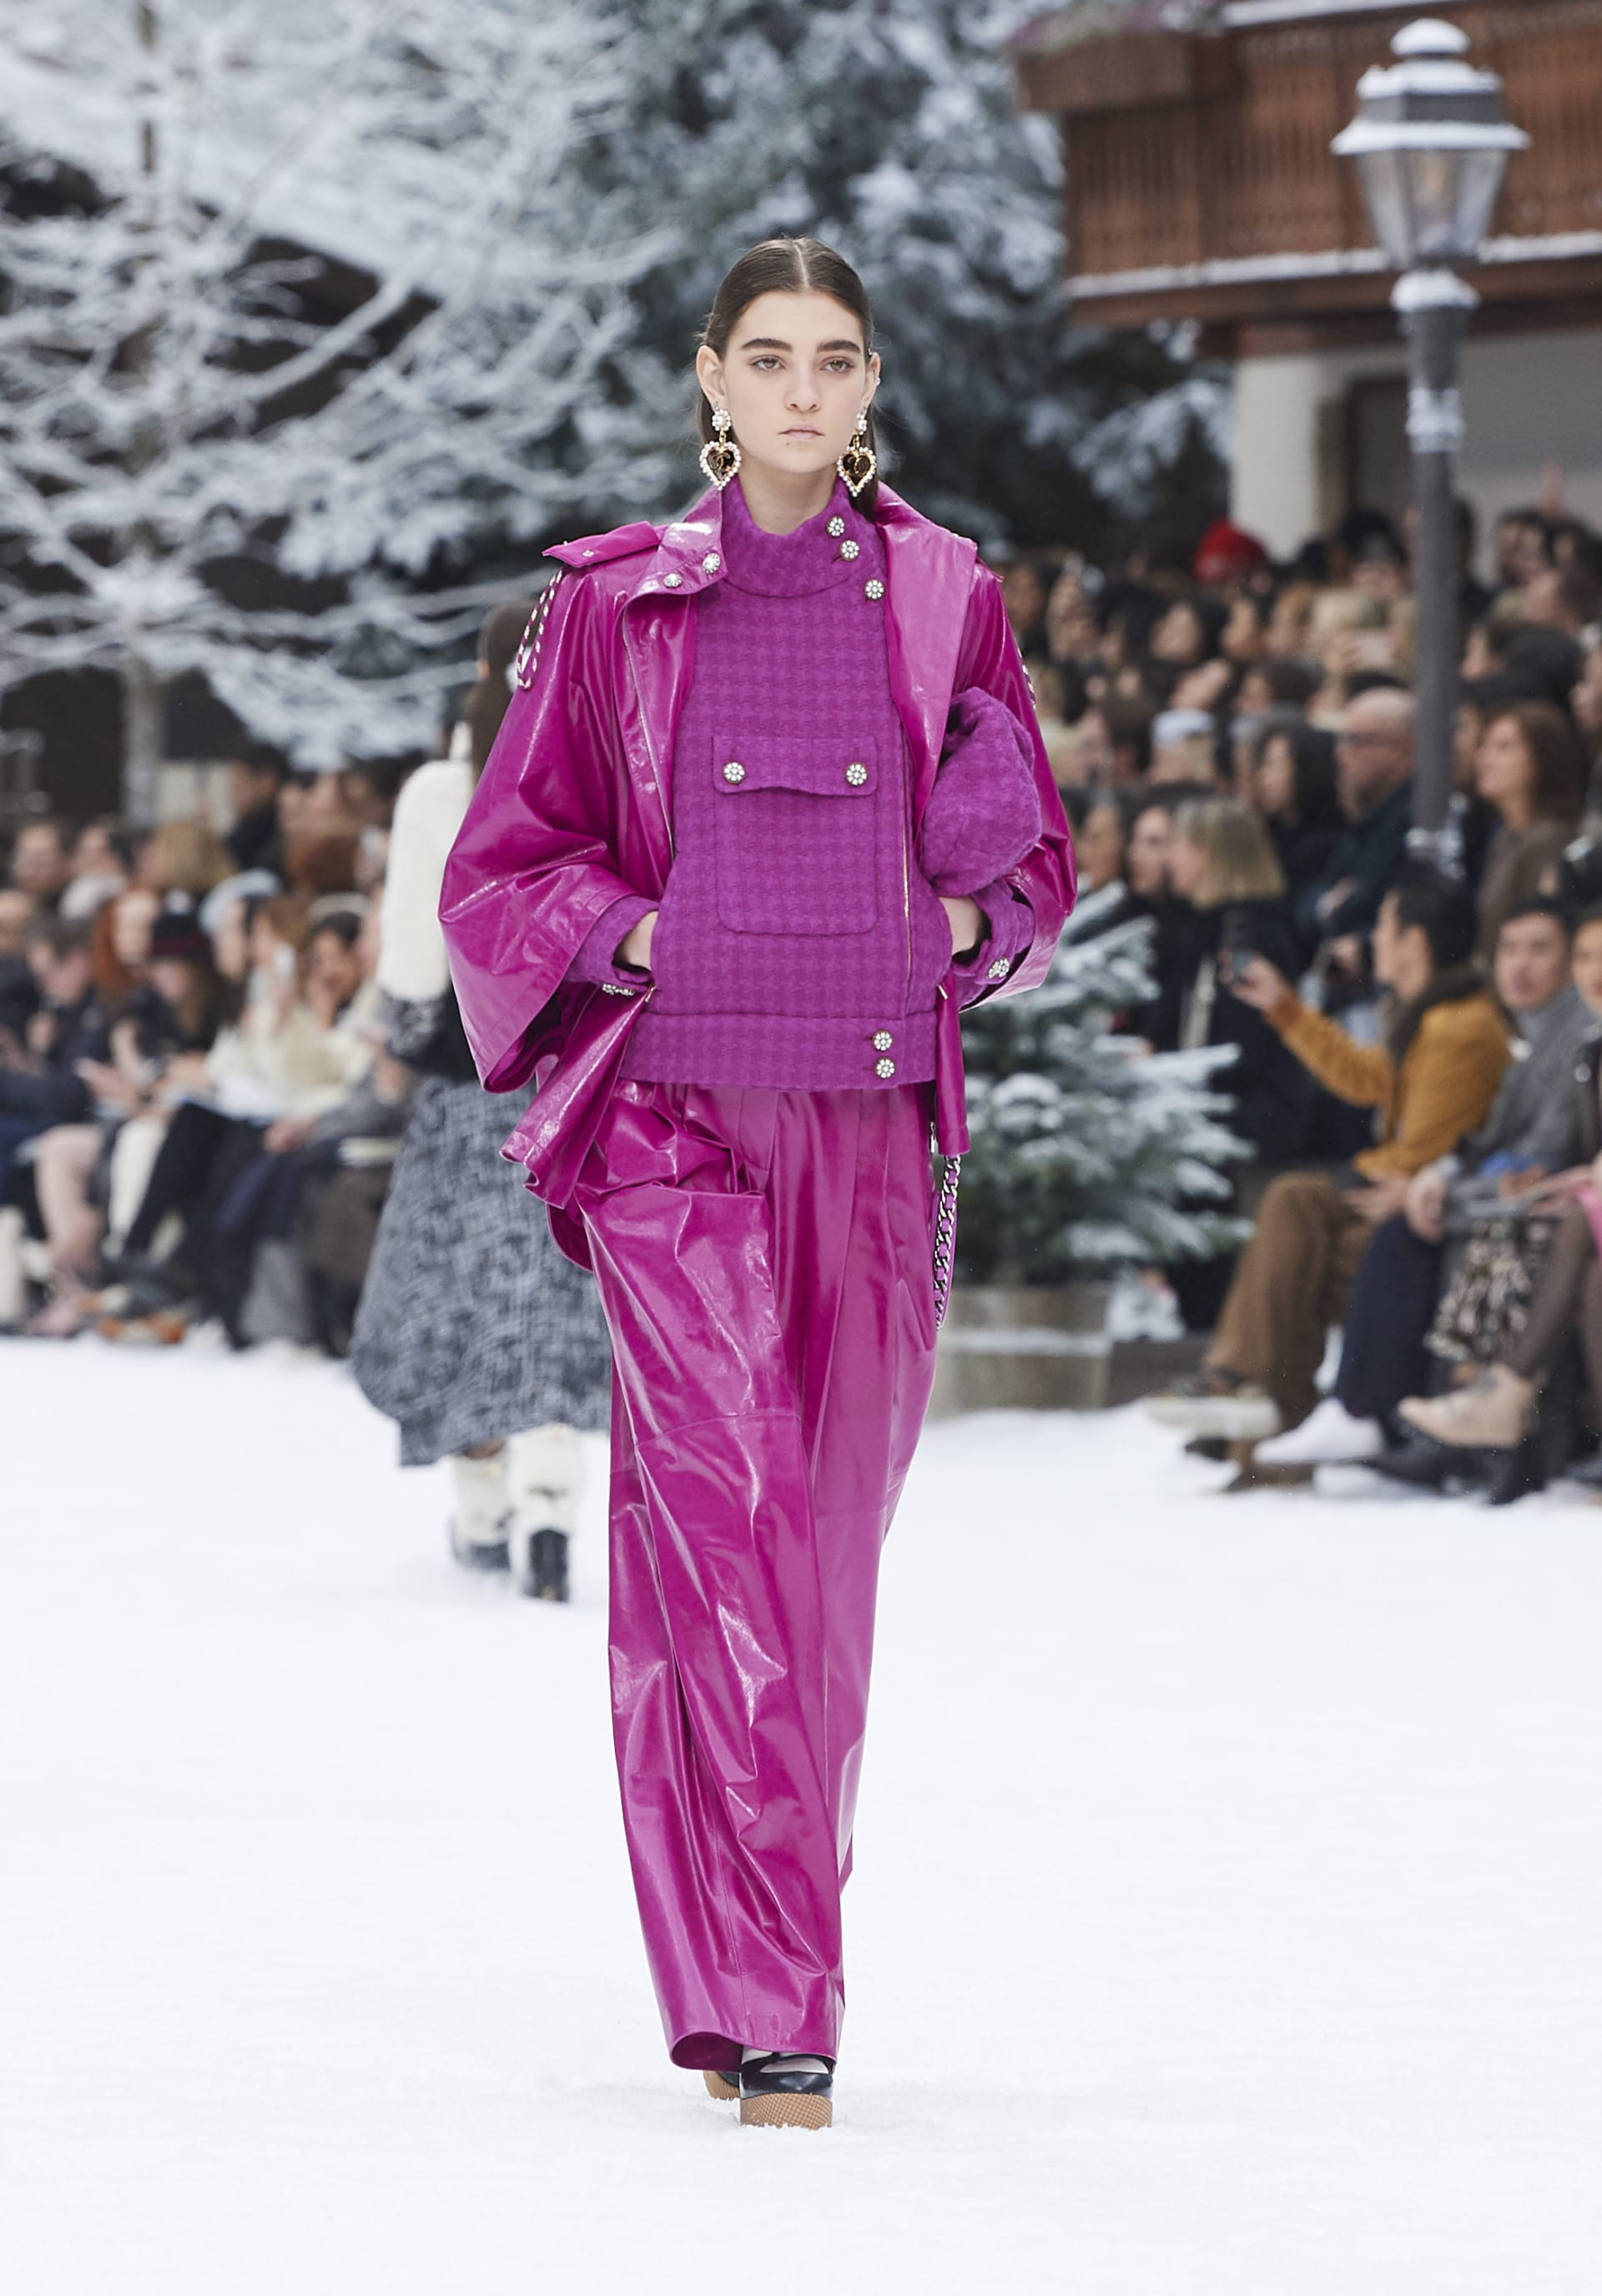 View 1 - Look 38 - Fall-Winter 2019/20